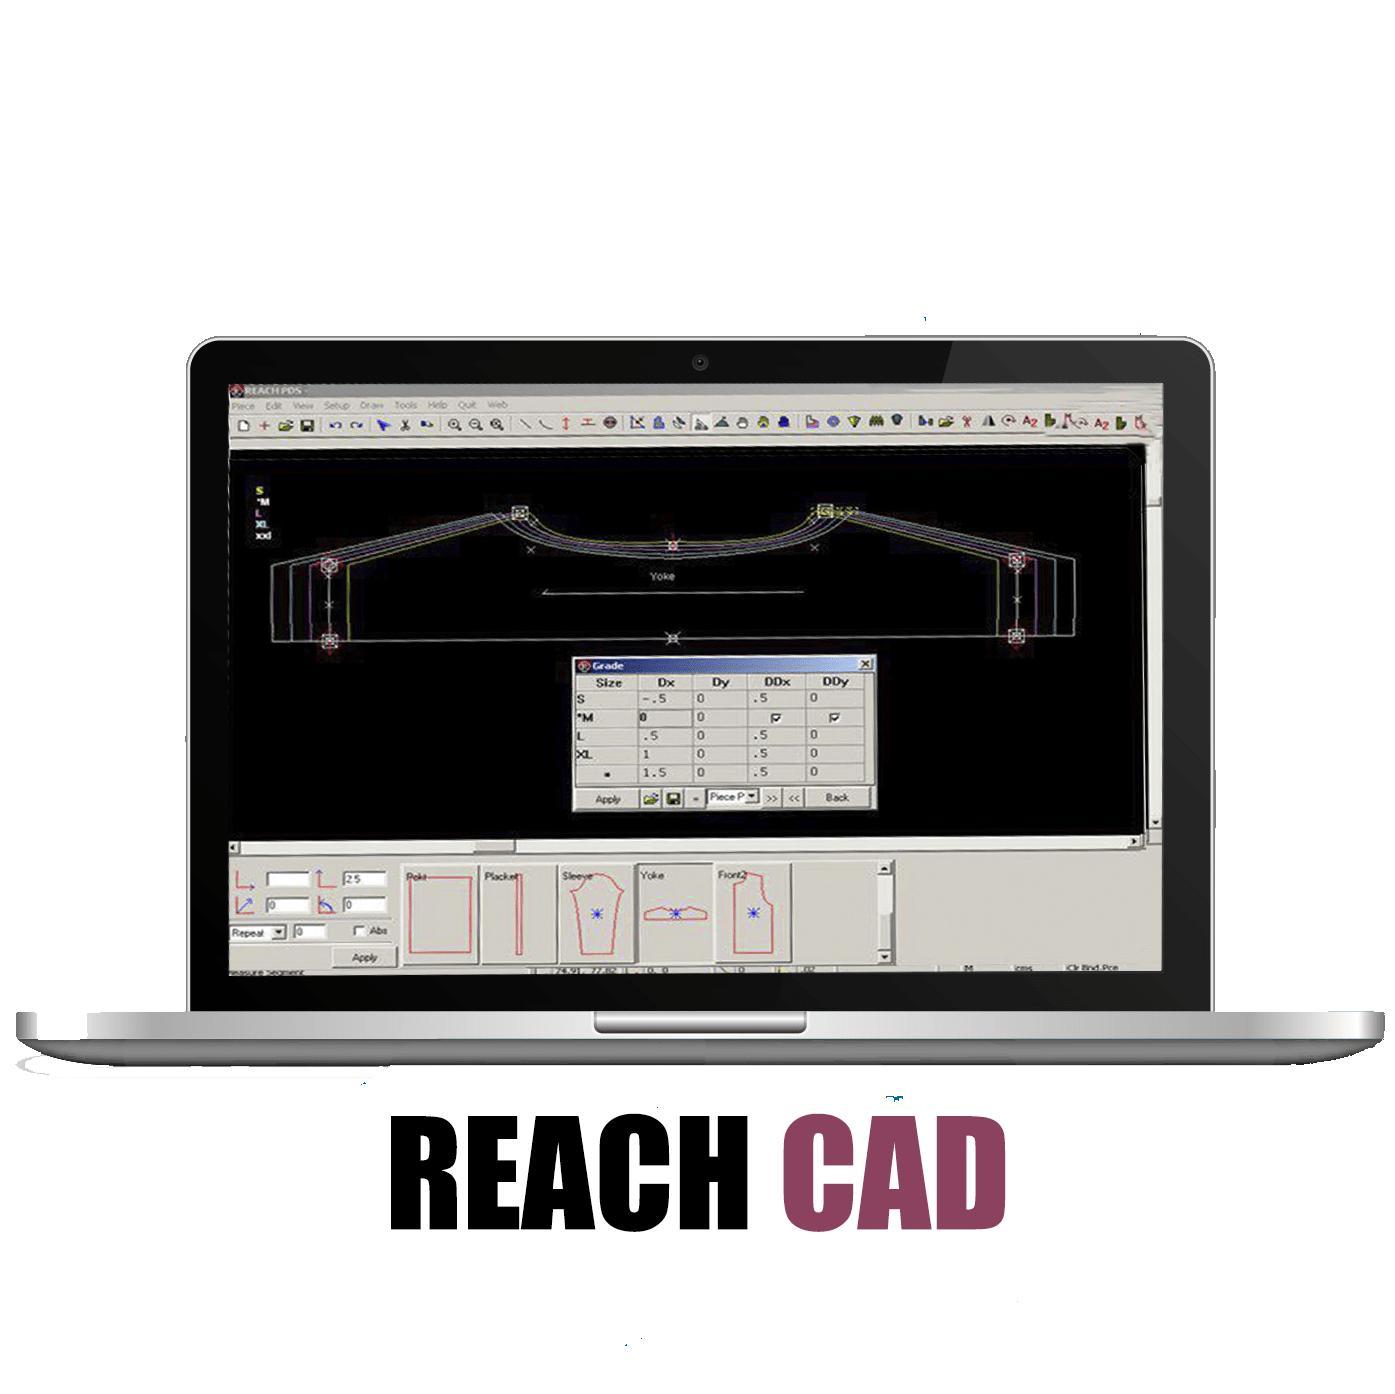 pattern-cad-reach-cad-1